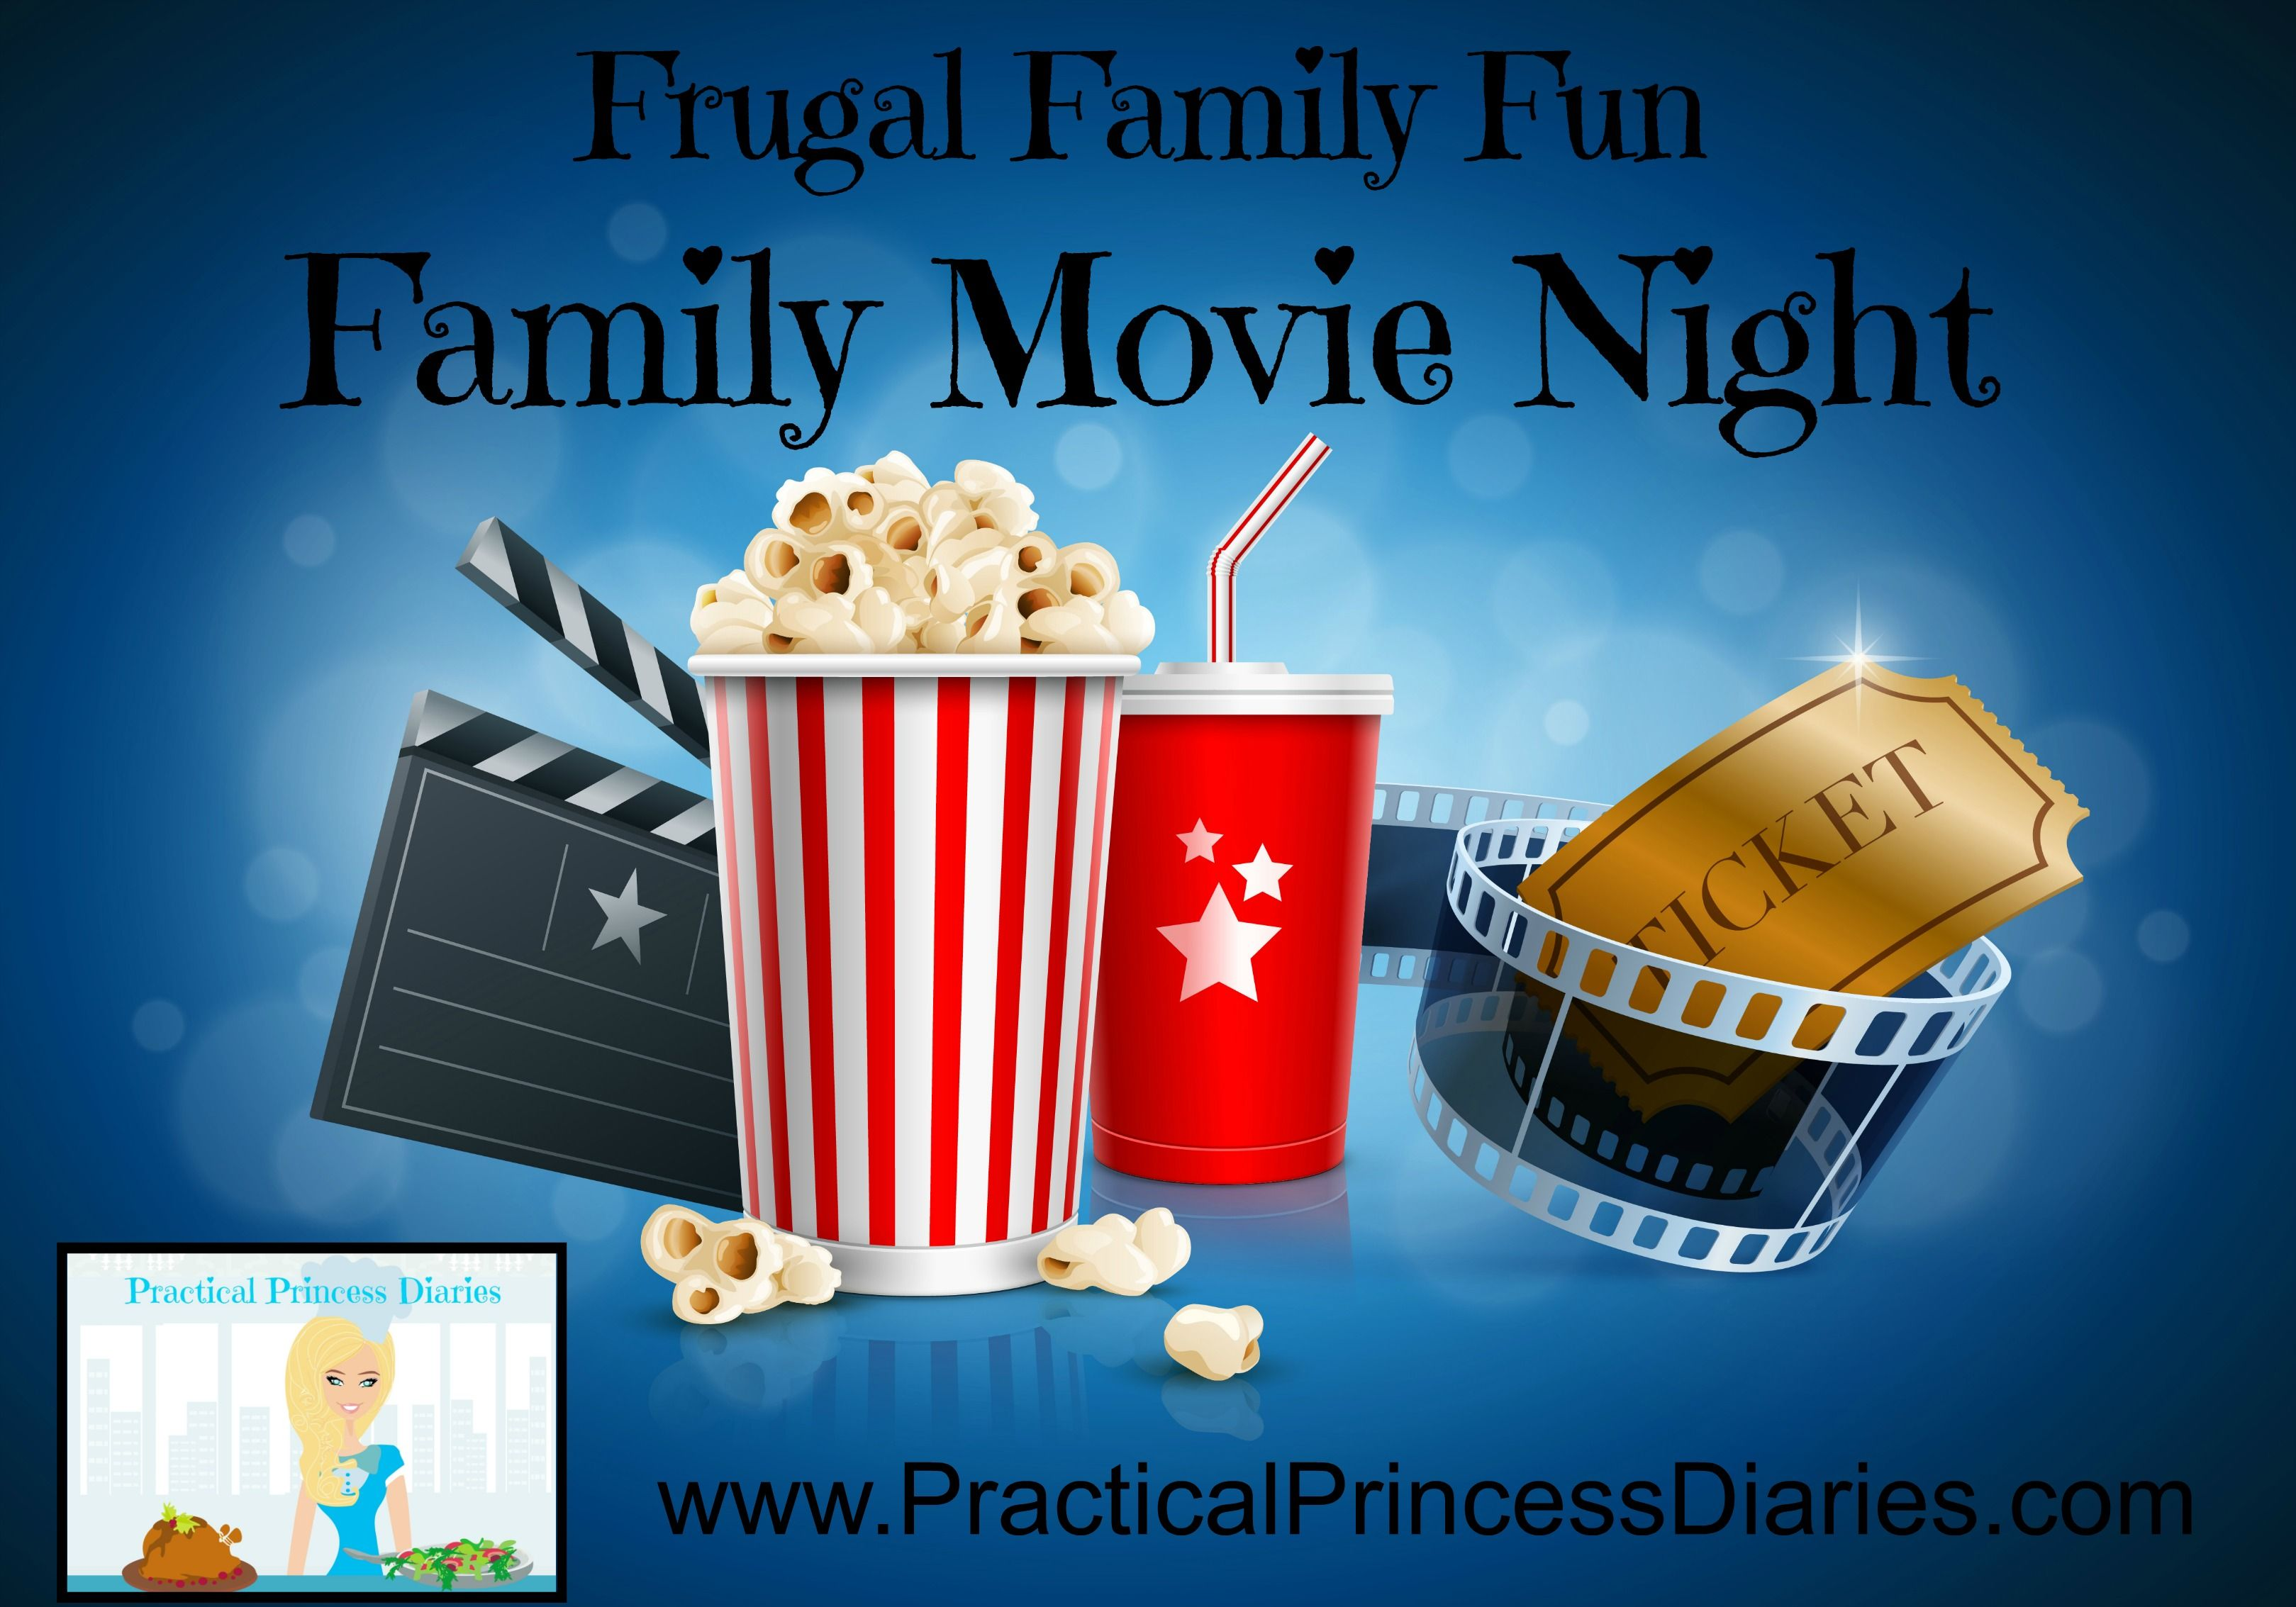 Family Movie Night Ideas. Looking for frugal family movie